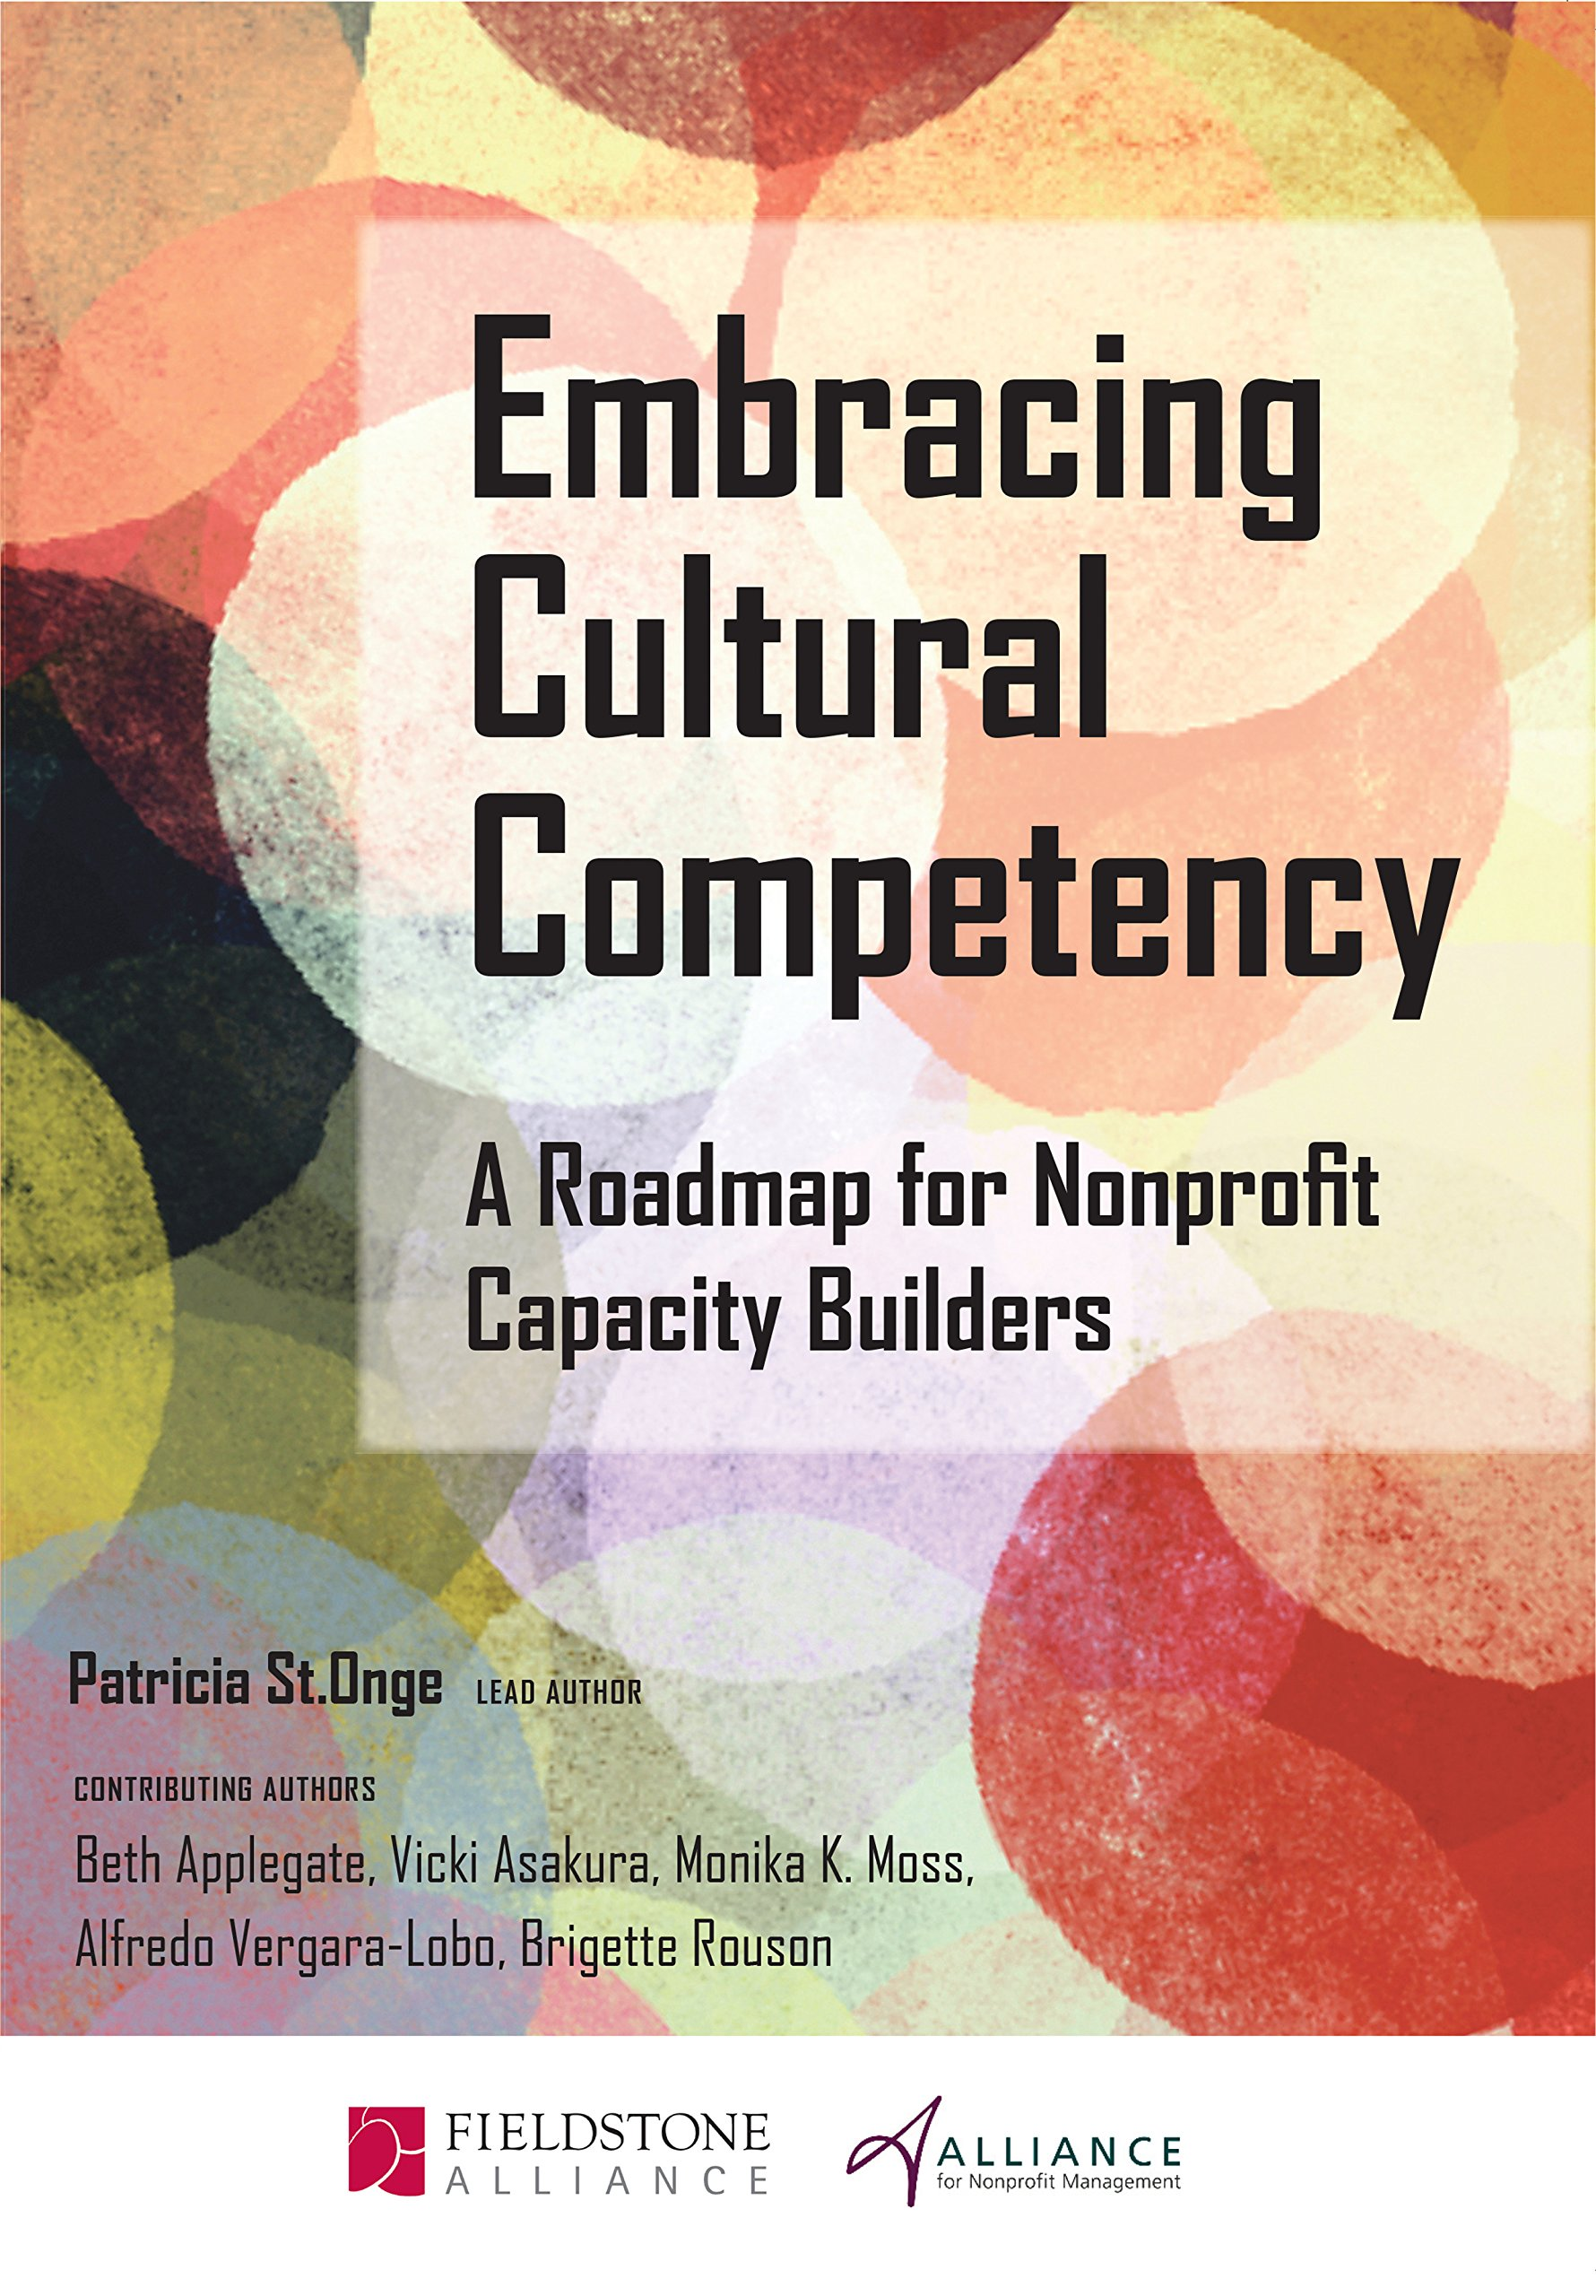 Embracing Cultural Competency: A Roadmap for Nonprofit Capacity Builders PDF